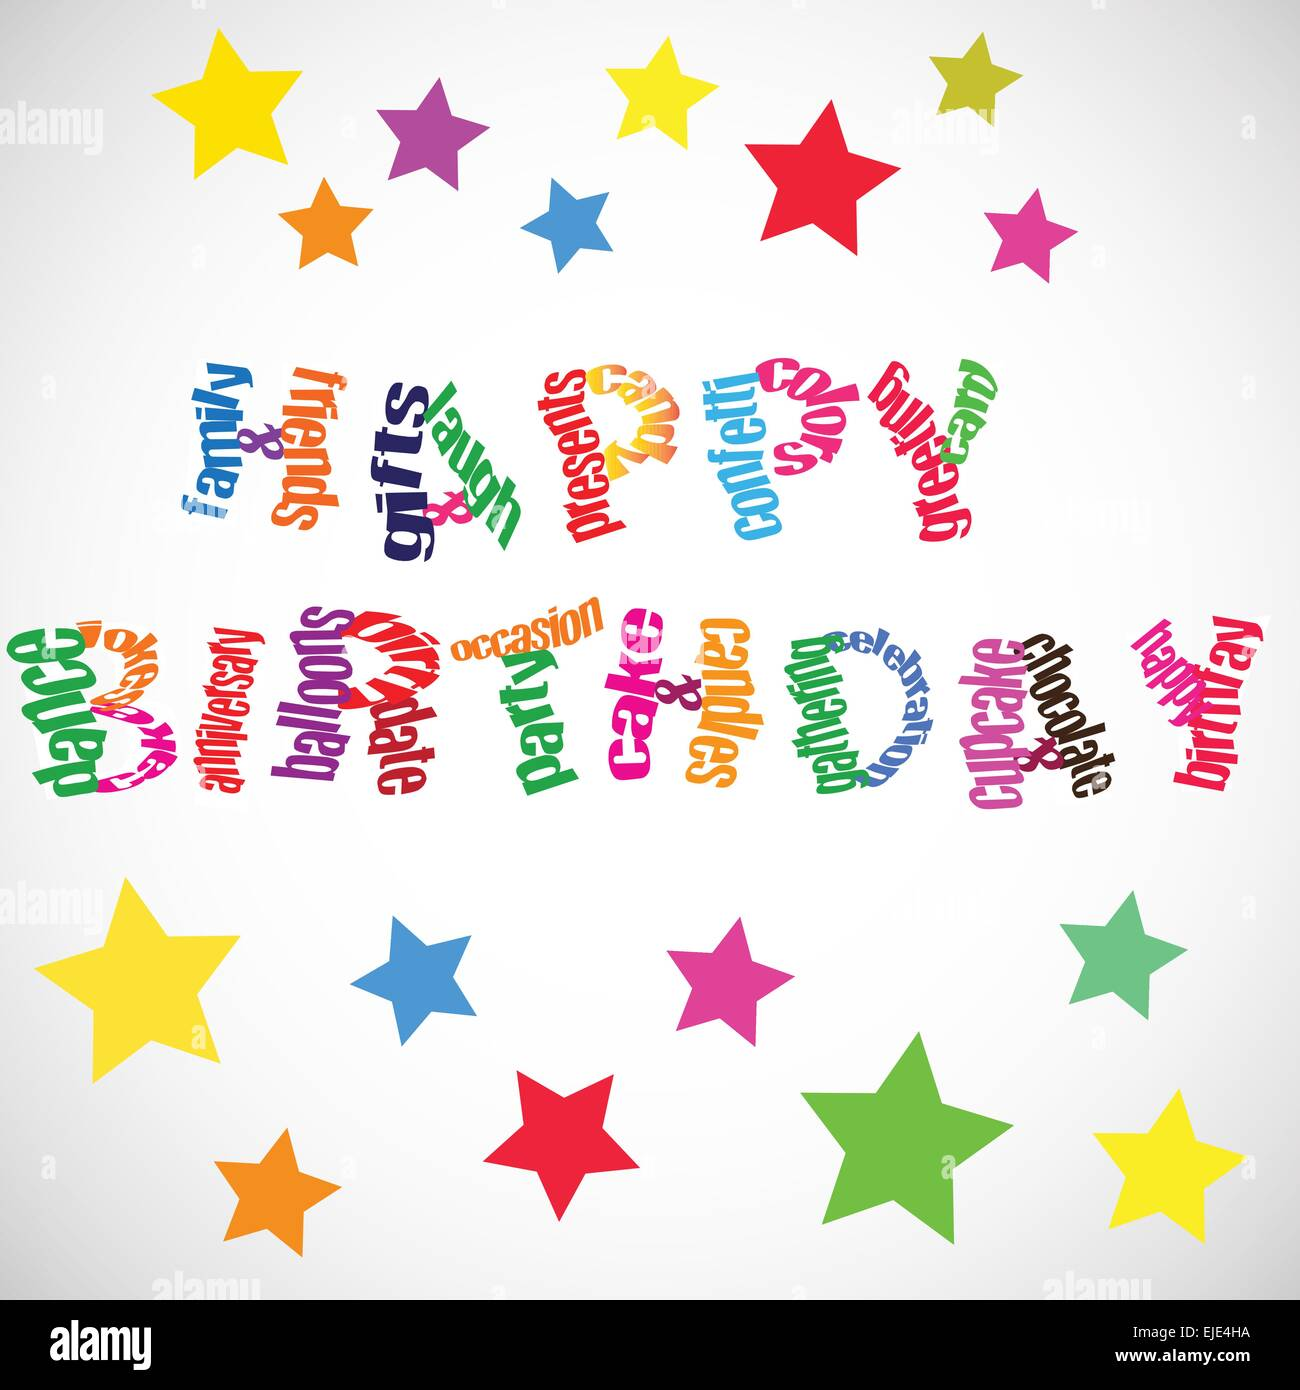 Happy birthday vector text with many related words and colored stars. - Stock Image